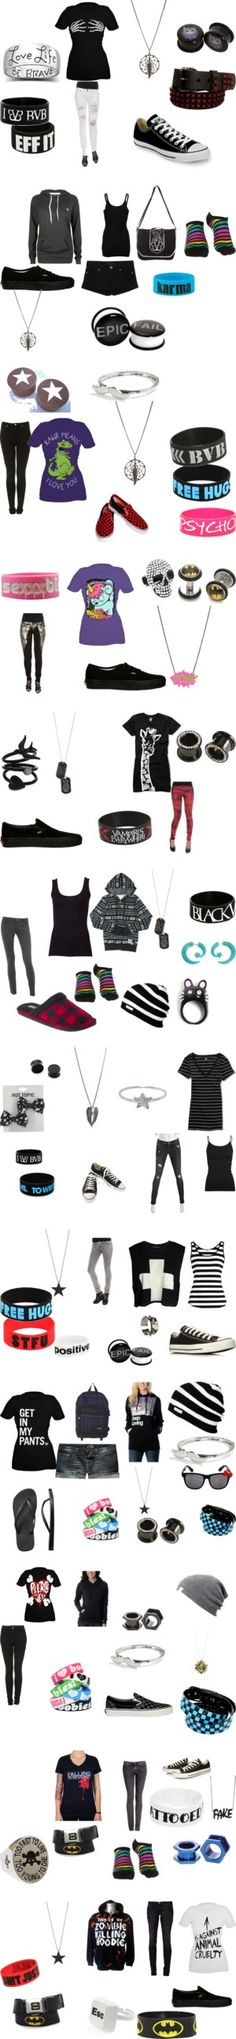 """Awesome sets!"" by keyanna-bvb ❤ liked on Polyvore"